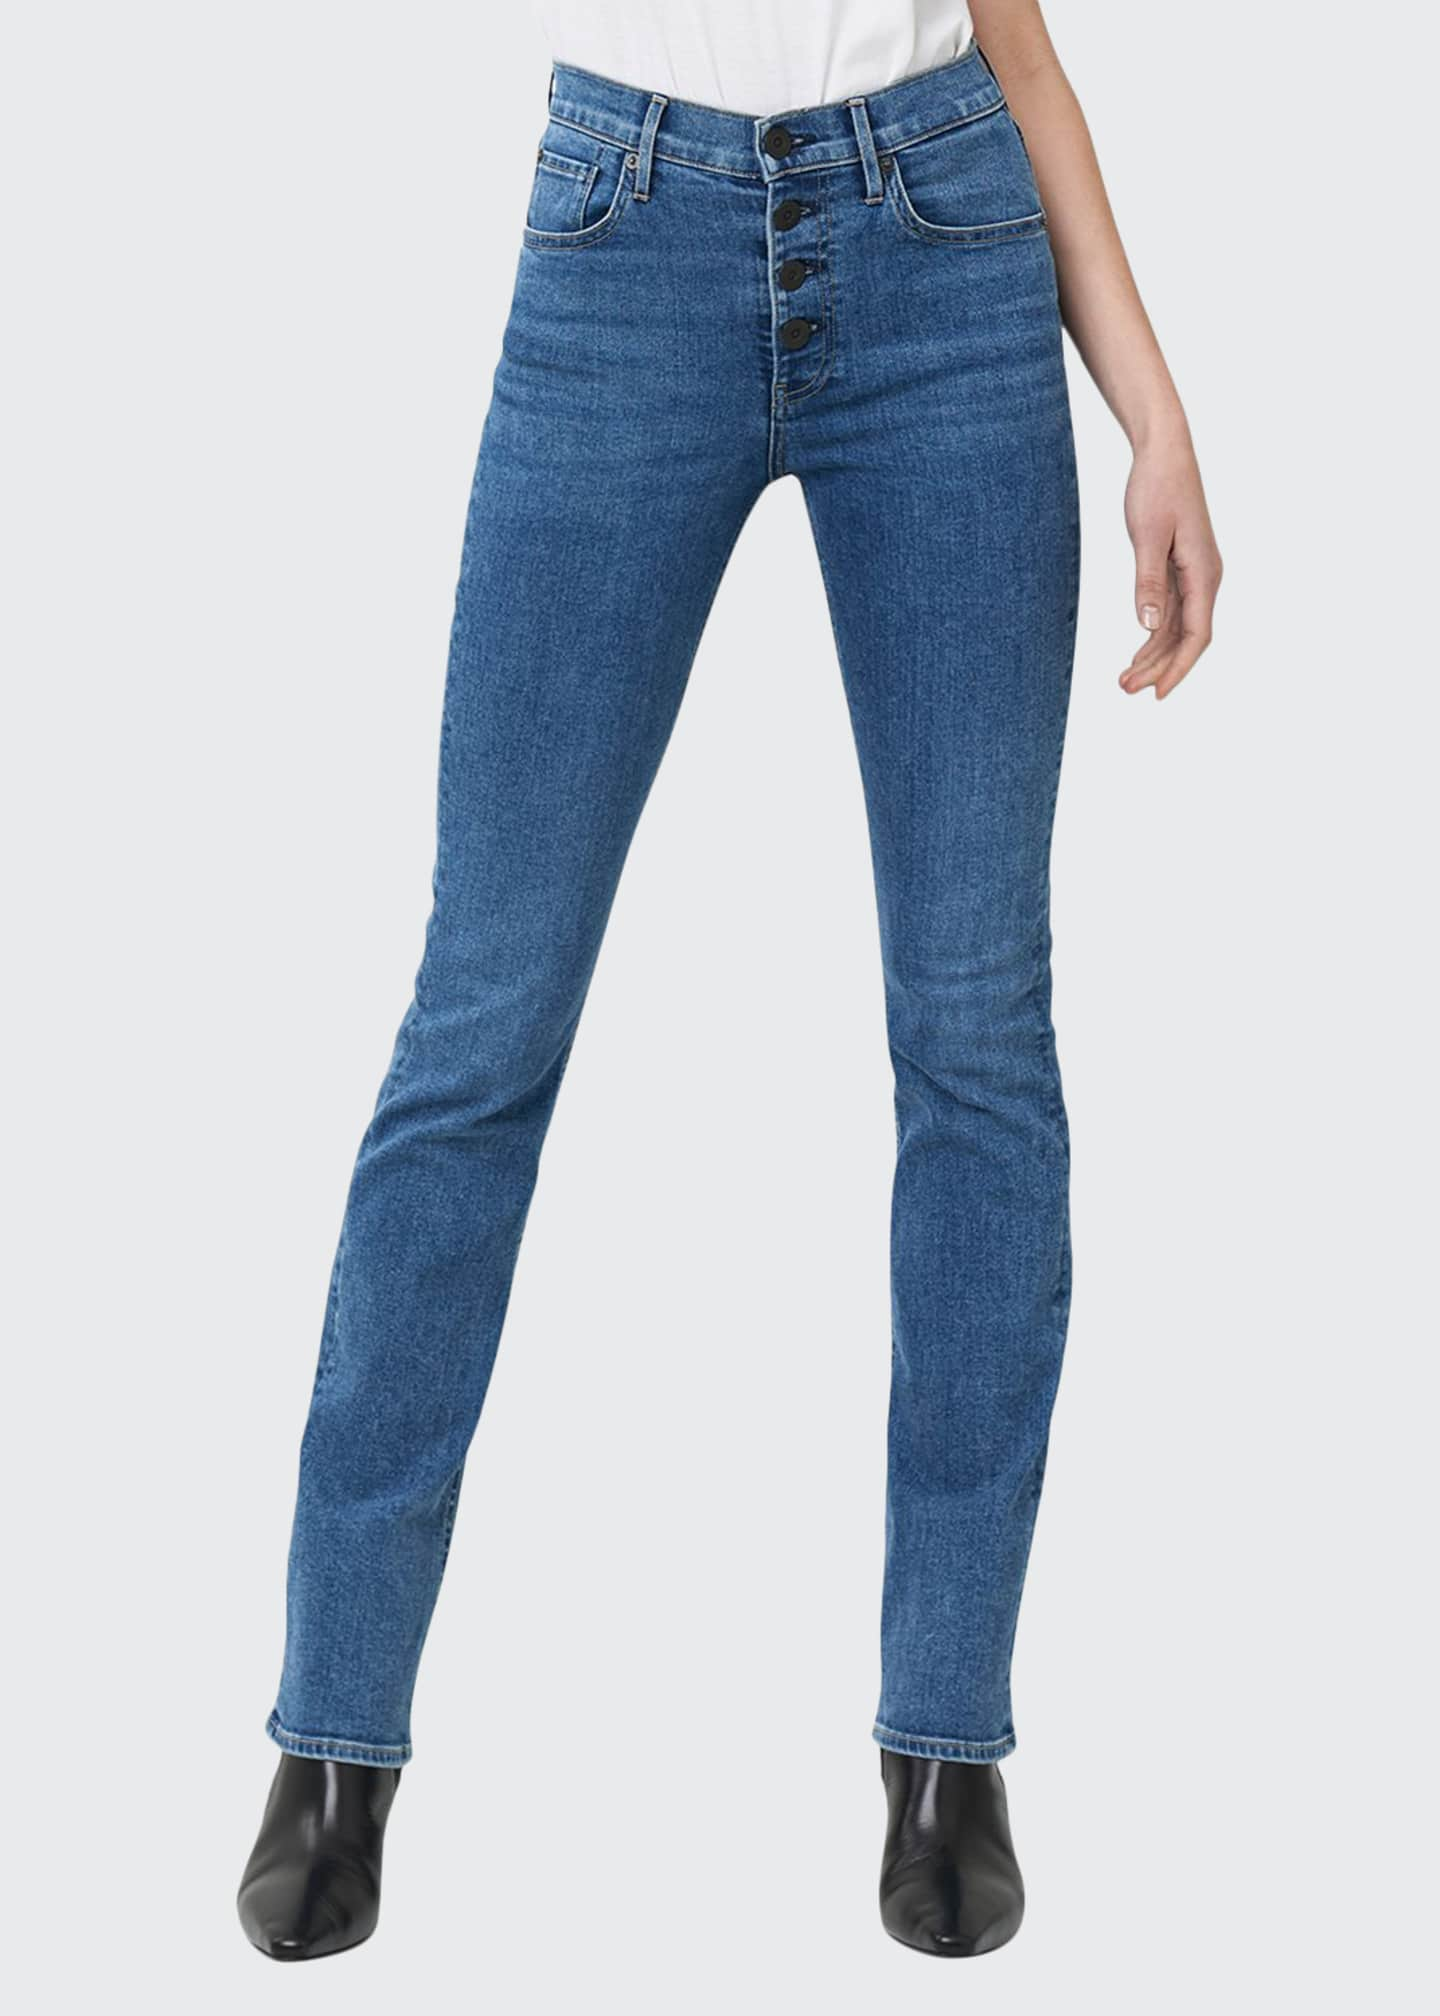 3x1 Poppy Slim Boot-Cut Jeans with Button Fly